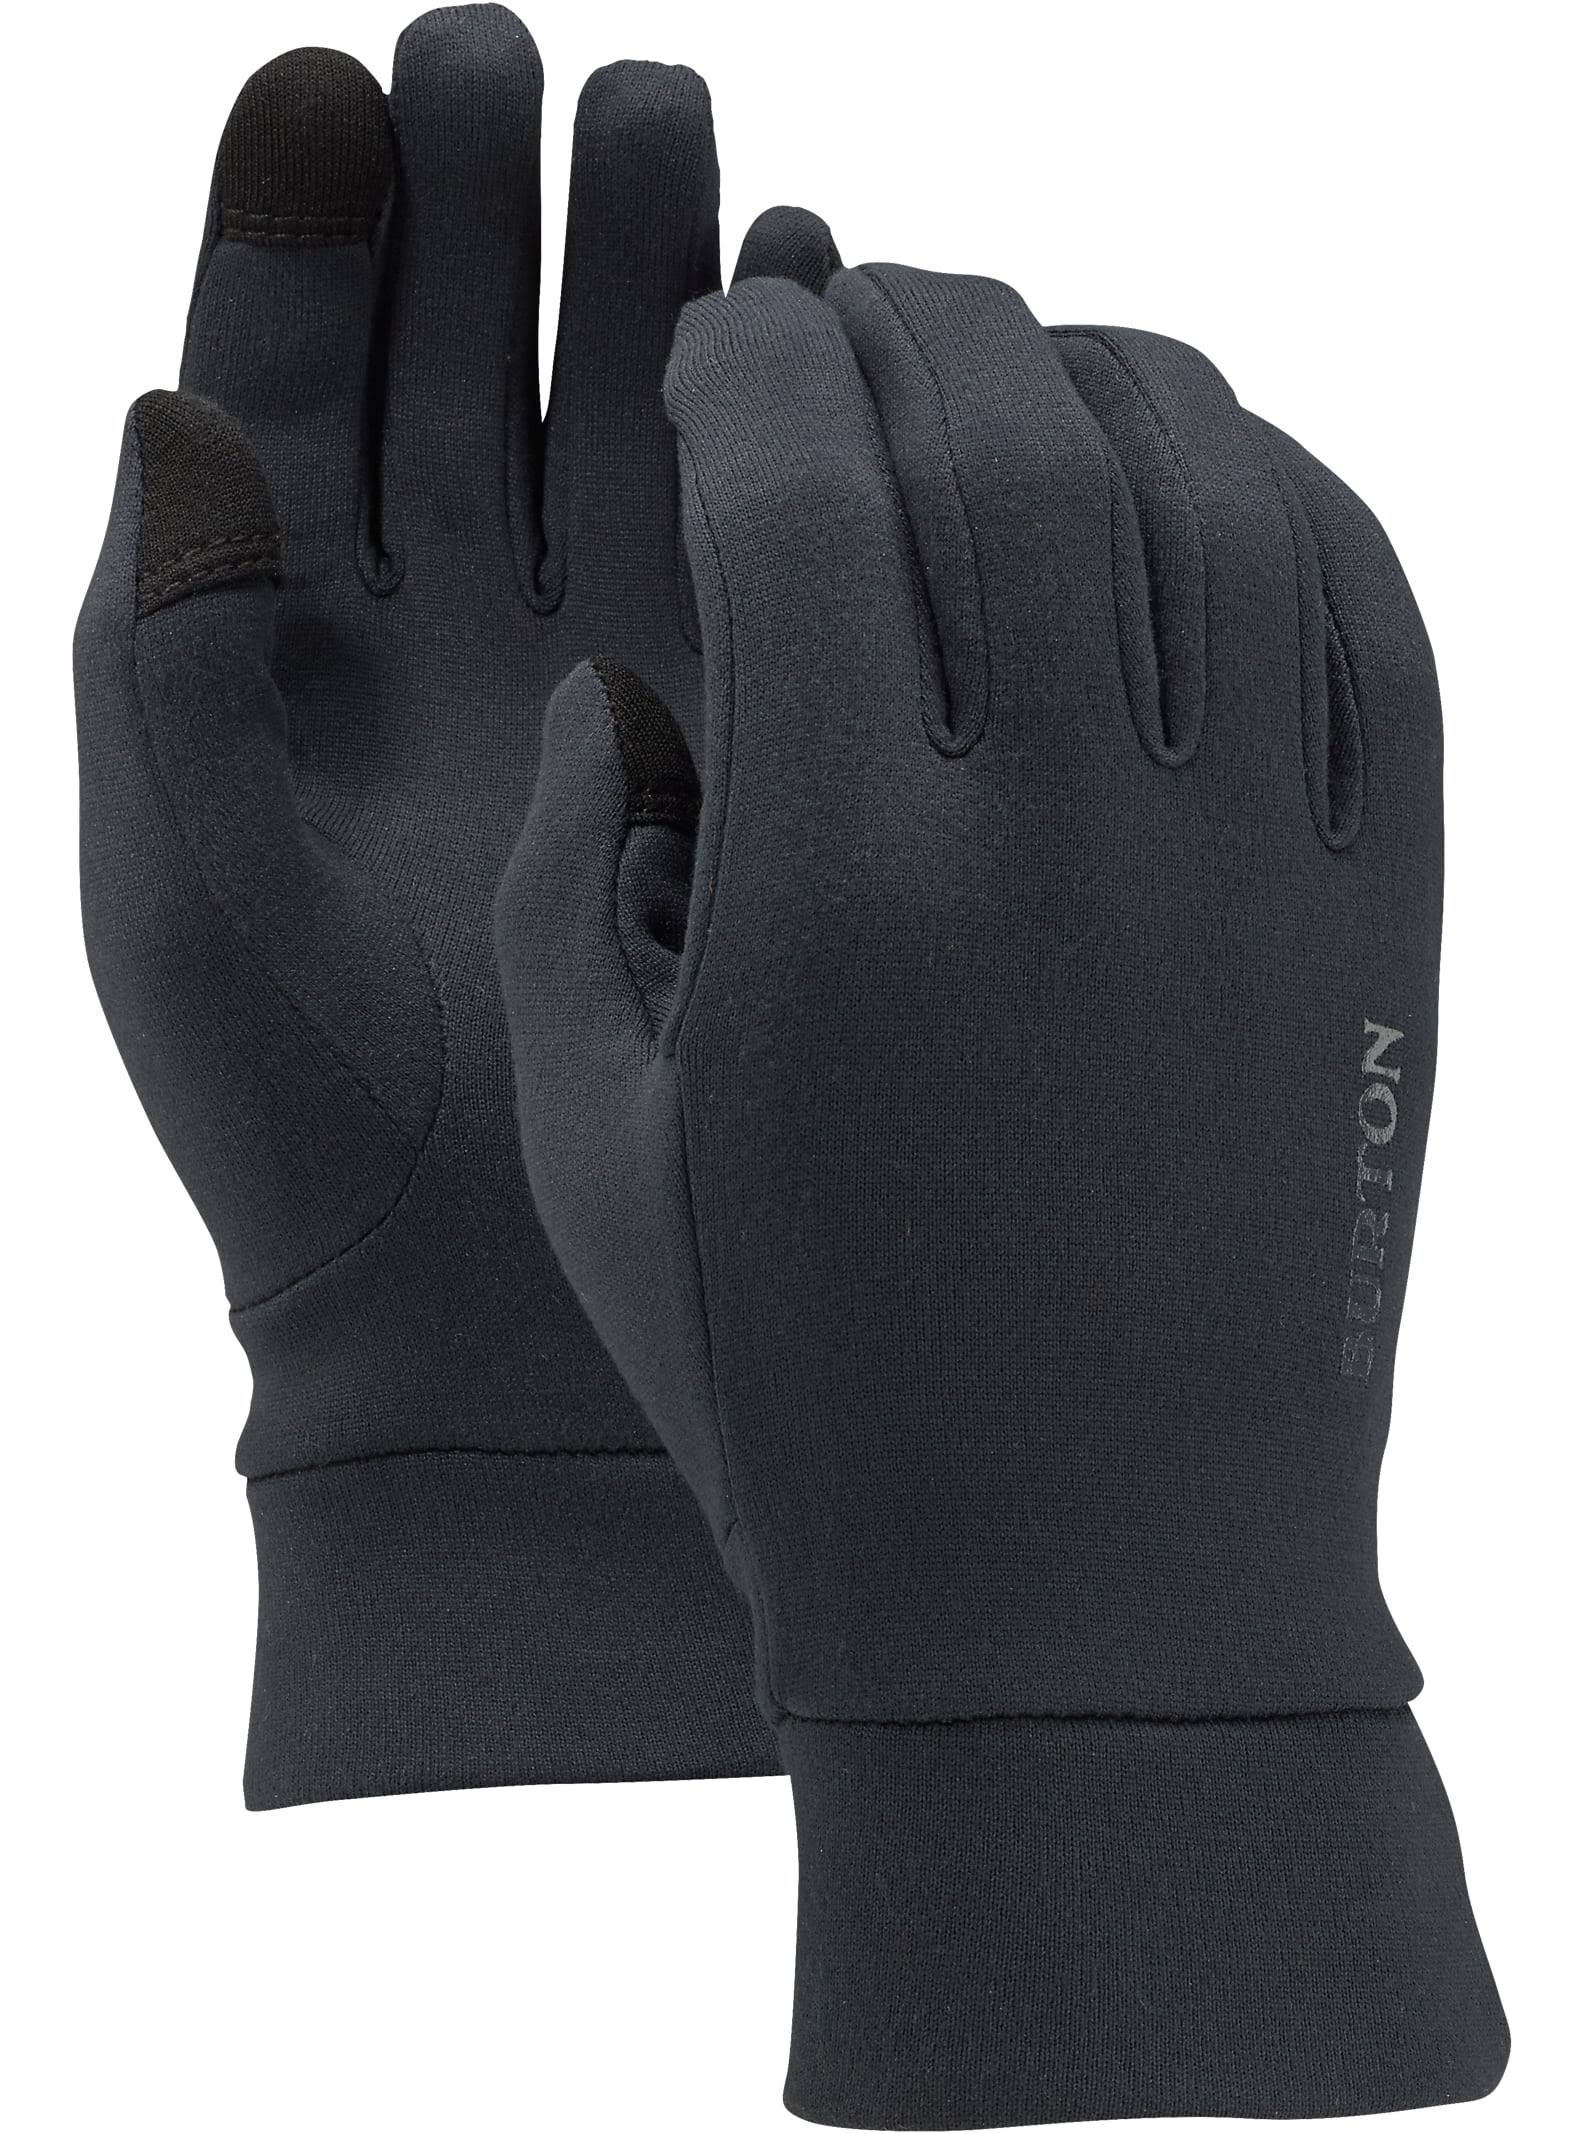 Burton Youth Screen Grab Liner GLoves - True Black, Large